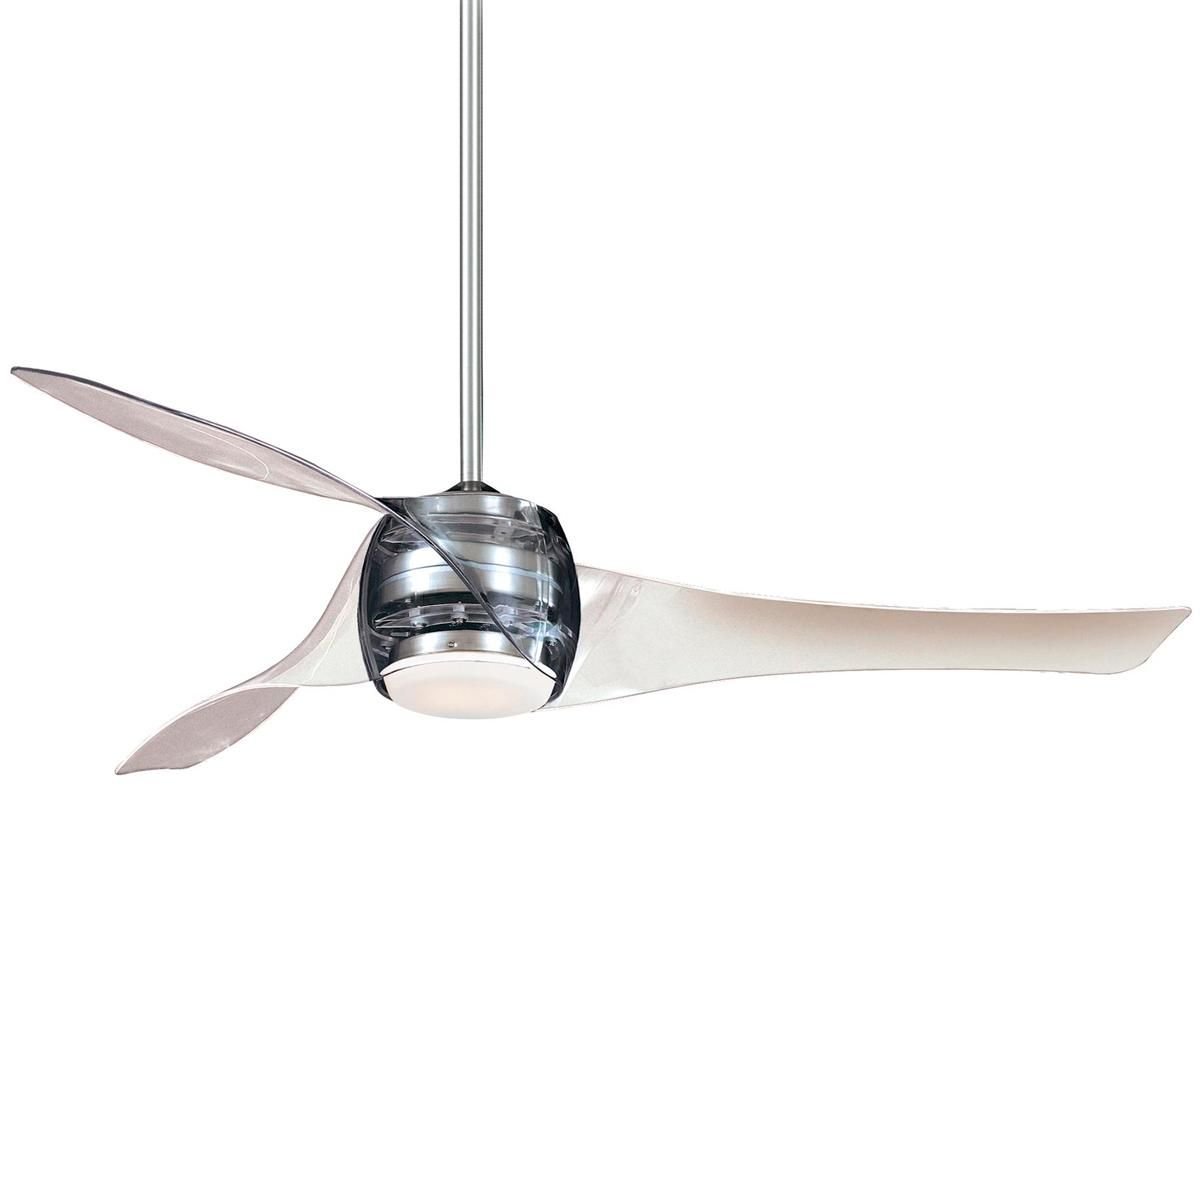 58 contemporary twisted blade led ceiling fan ceiling fan blade contemporary twisted blade ceiling fan mozeypictures Images